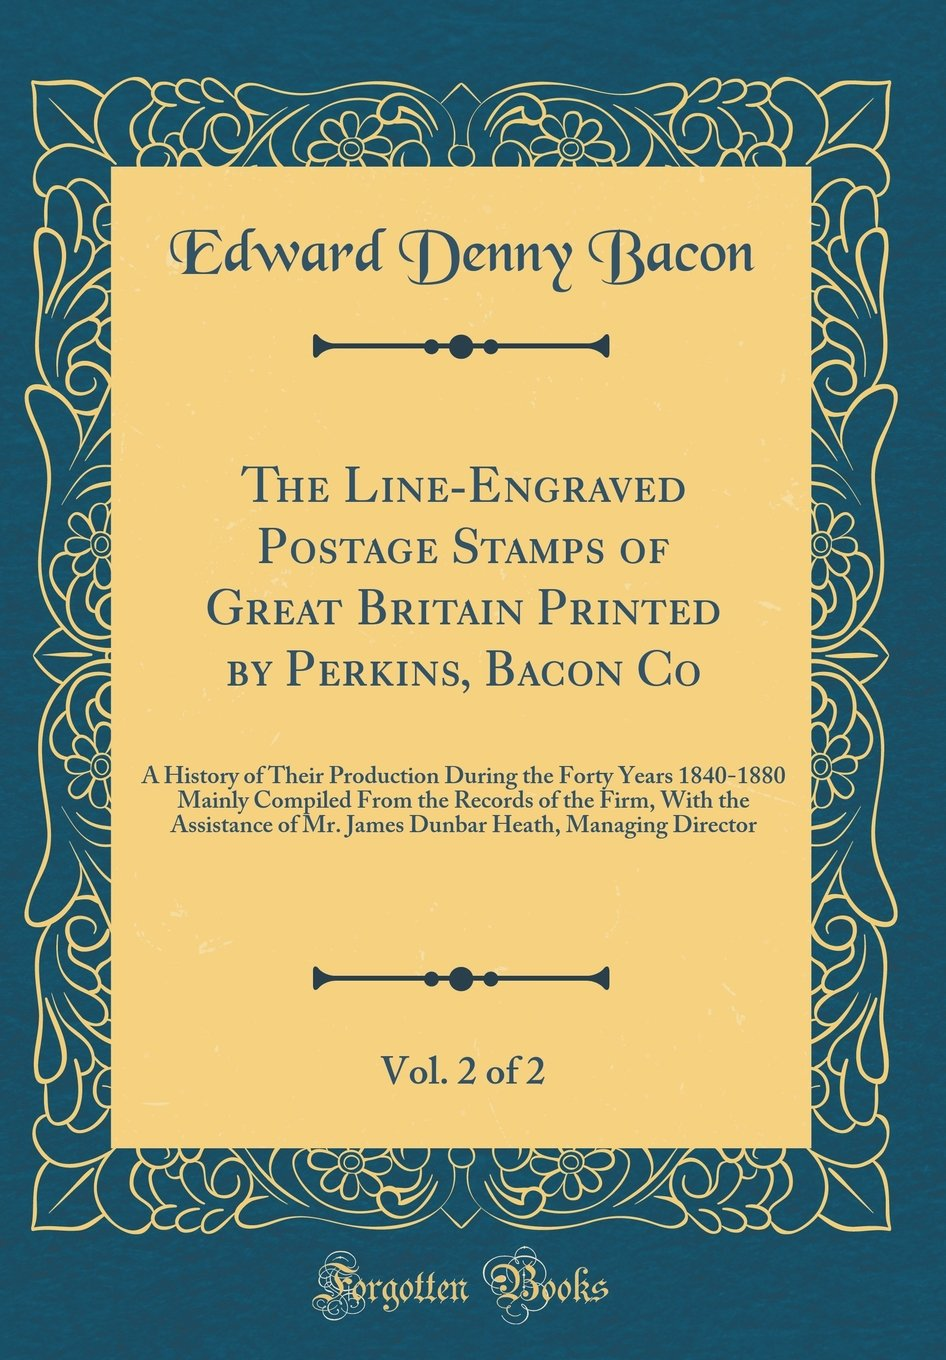 The Line-Engraved Postage Stamps of Great Britain Printed by Perkins, Bacon Co, Vol. 2 of 2: A History of Their Production During the Forty Years ... Assistance of Mr. James Dunbar Heath, Managi ebook